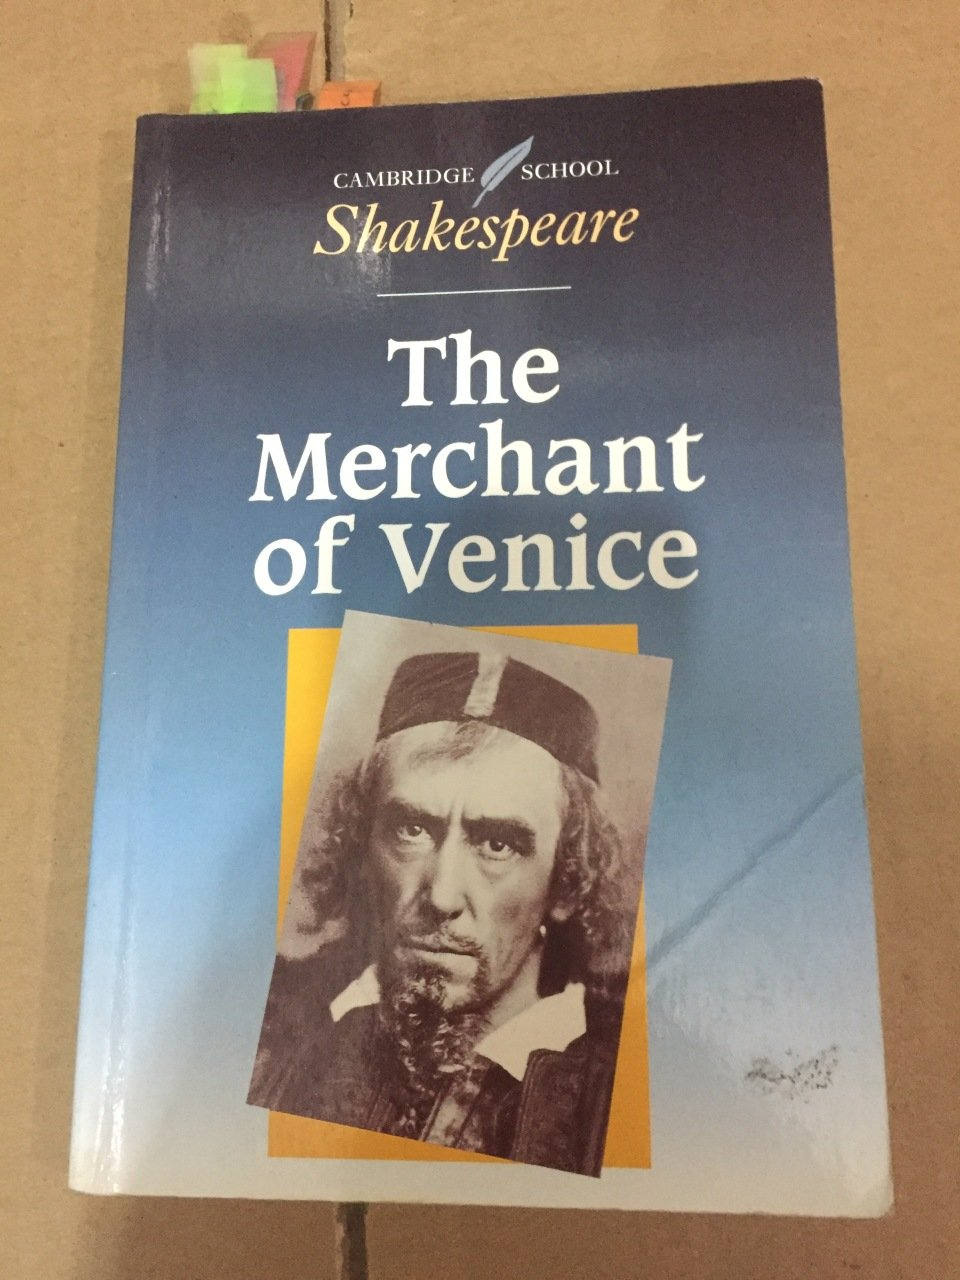 exploring the three themes of shakespeares the merchant of venice The plot revolves around a venetian merchant who can't repay a loan to a hated money friendship (click the themes infographic to download) to you, antonio, / i owe the most, in money and in love (114.